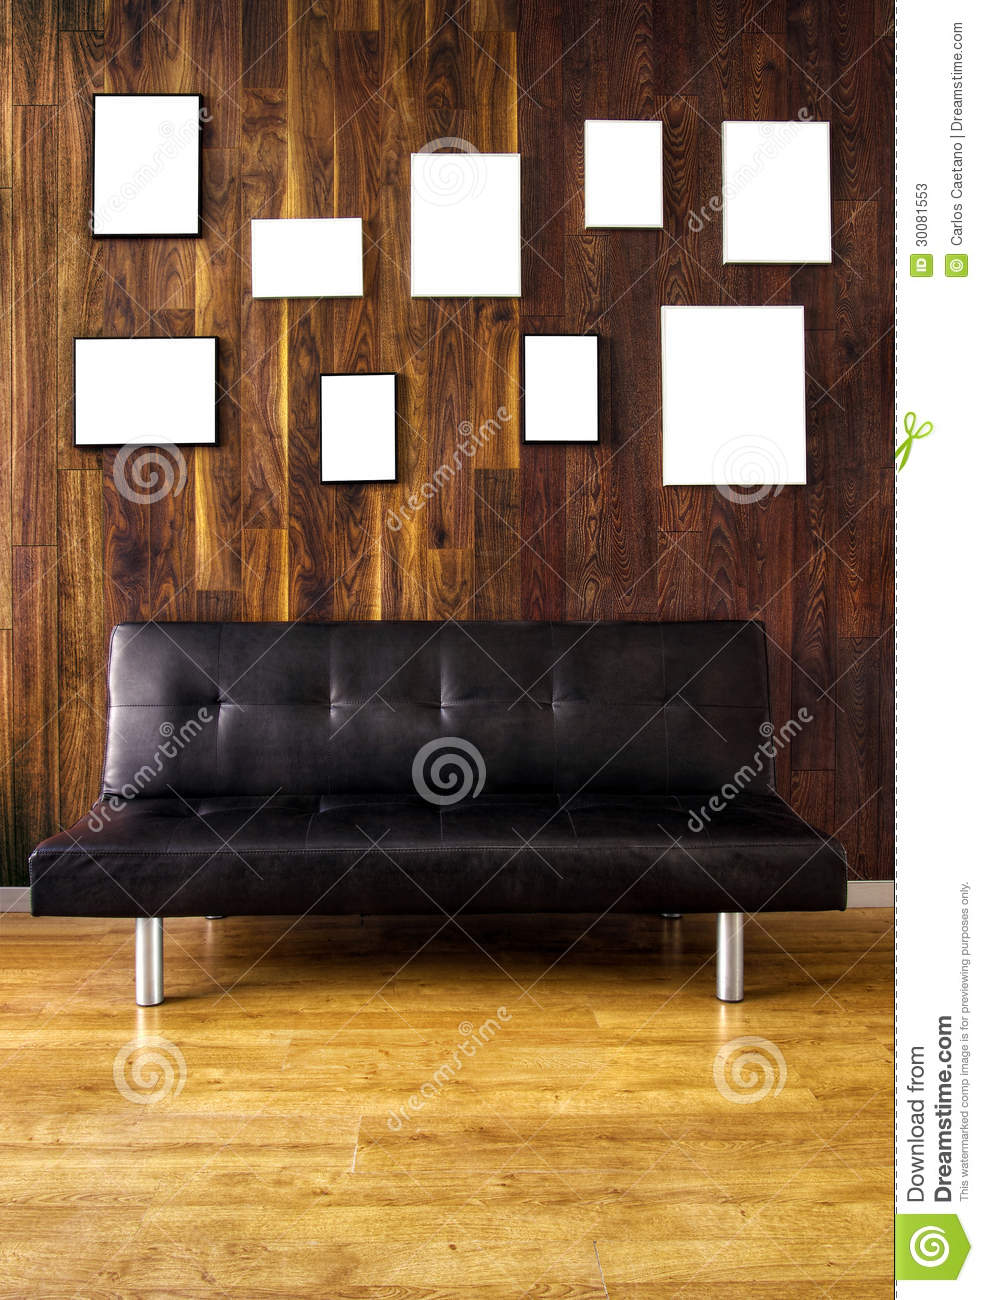 divan et cadres image stock image du abstrait tage 30081553. Black Bedroom Furniture Sets. Home Design Ideas